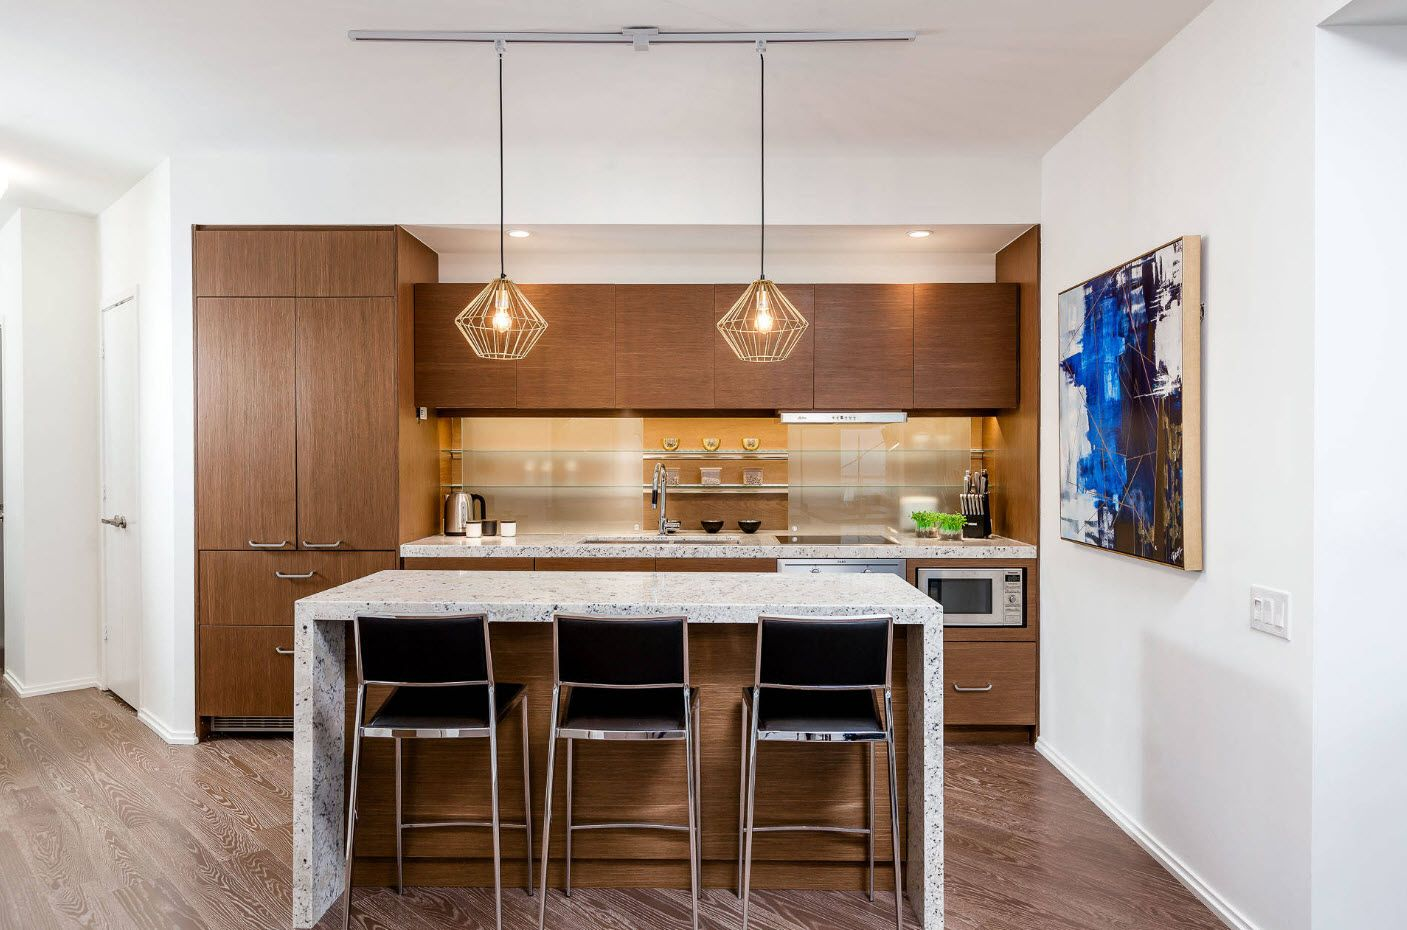 Neat wooden facades of the modern spacious kitchen with black chairs